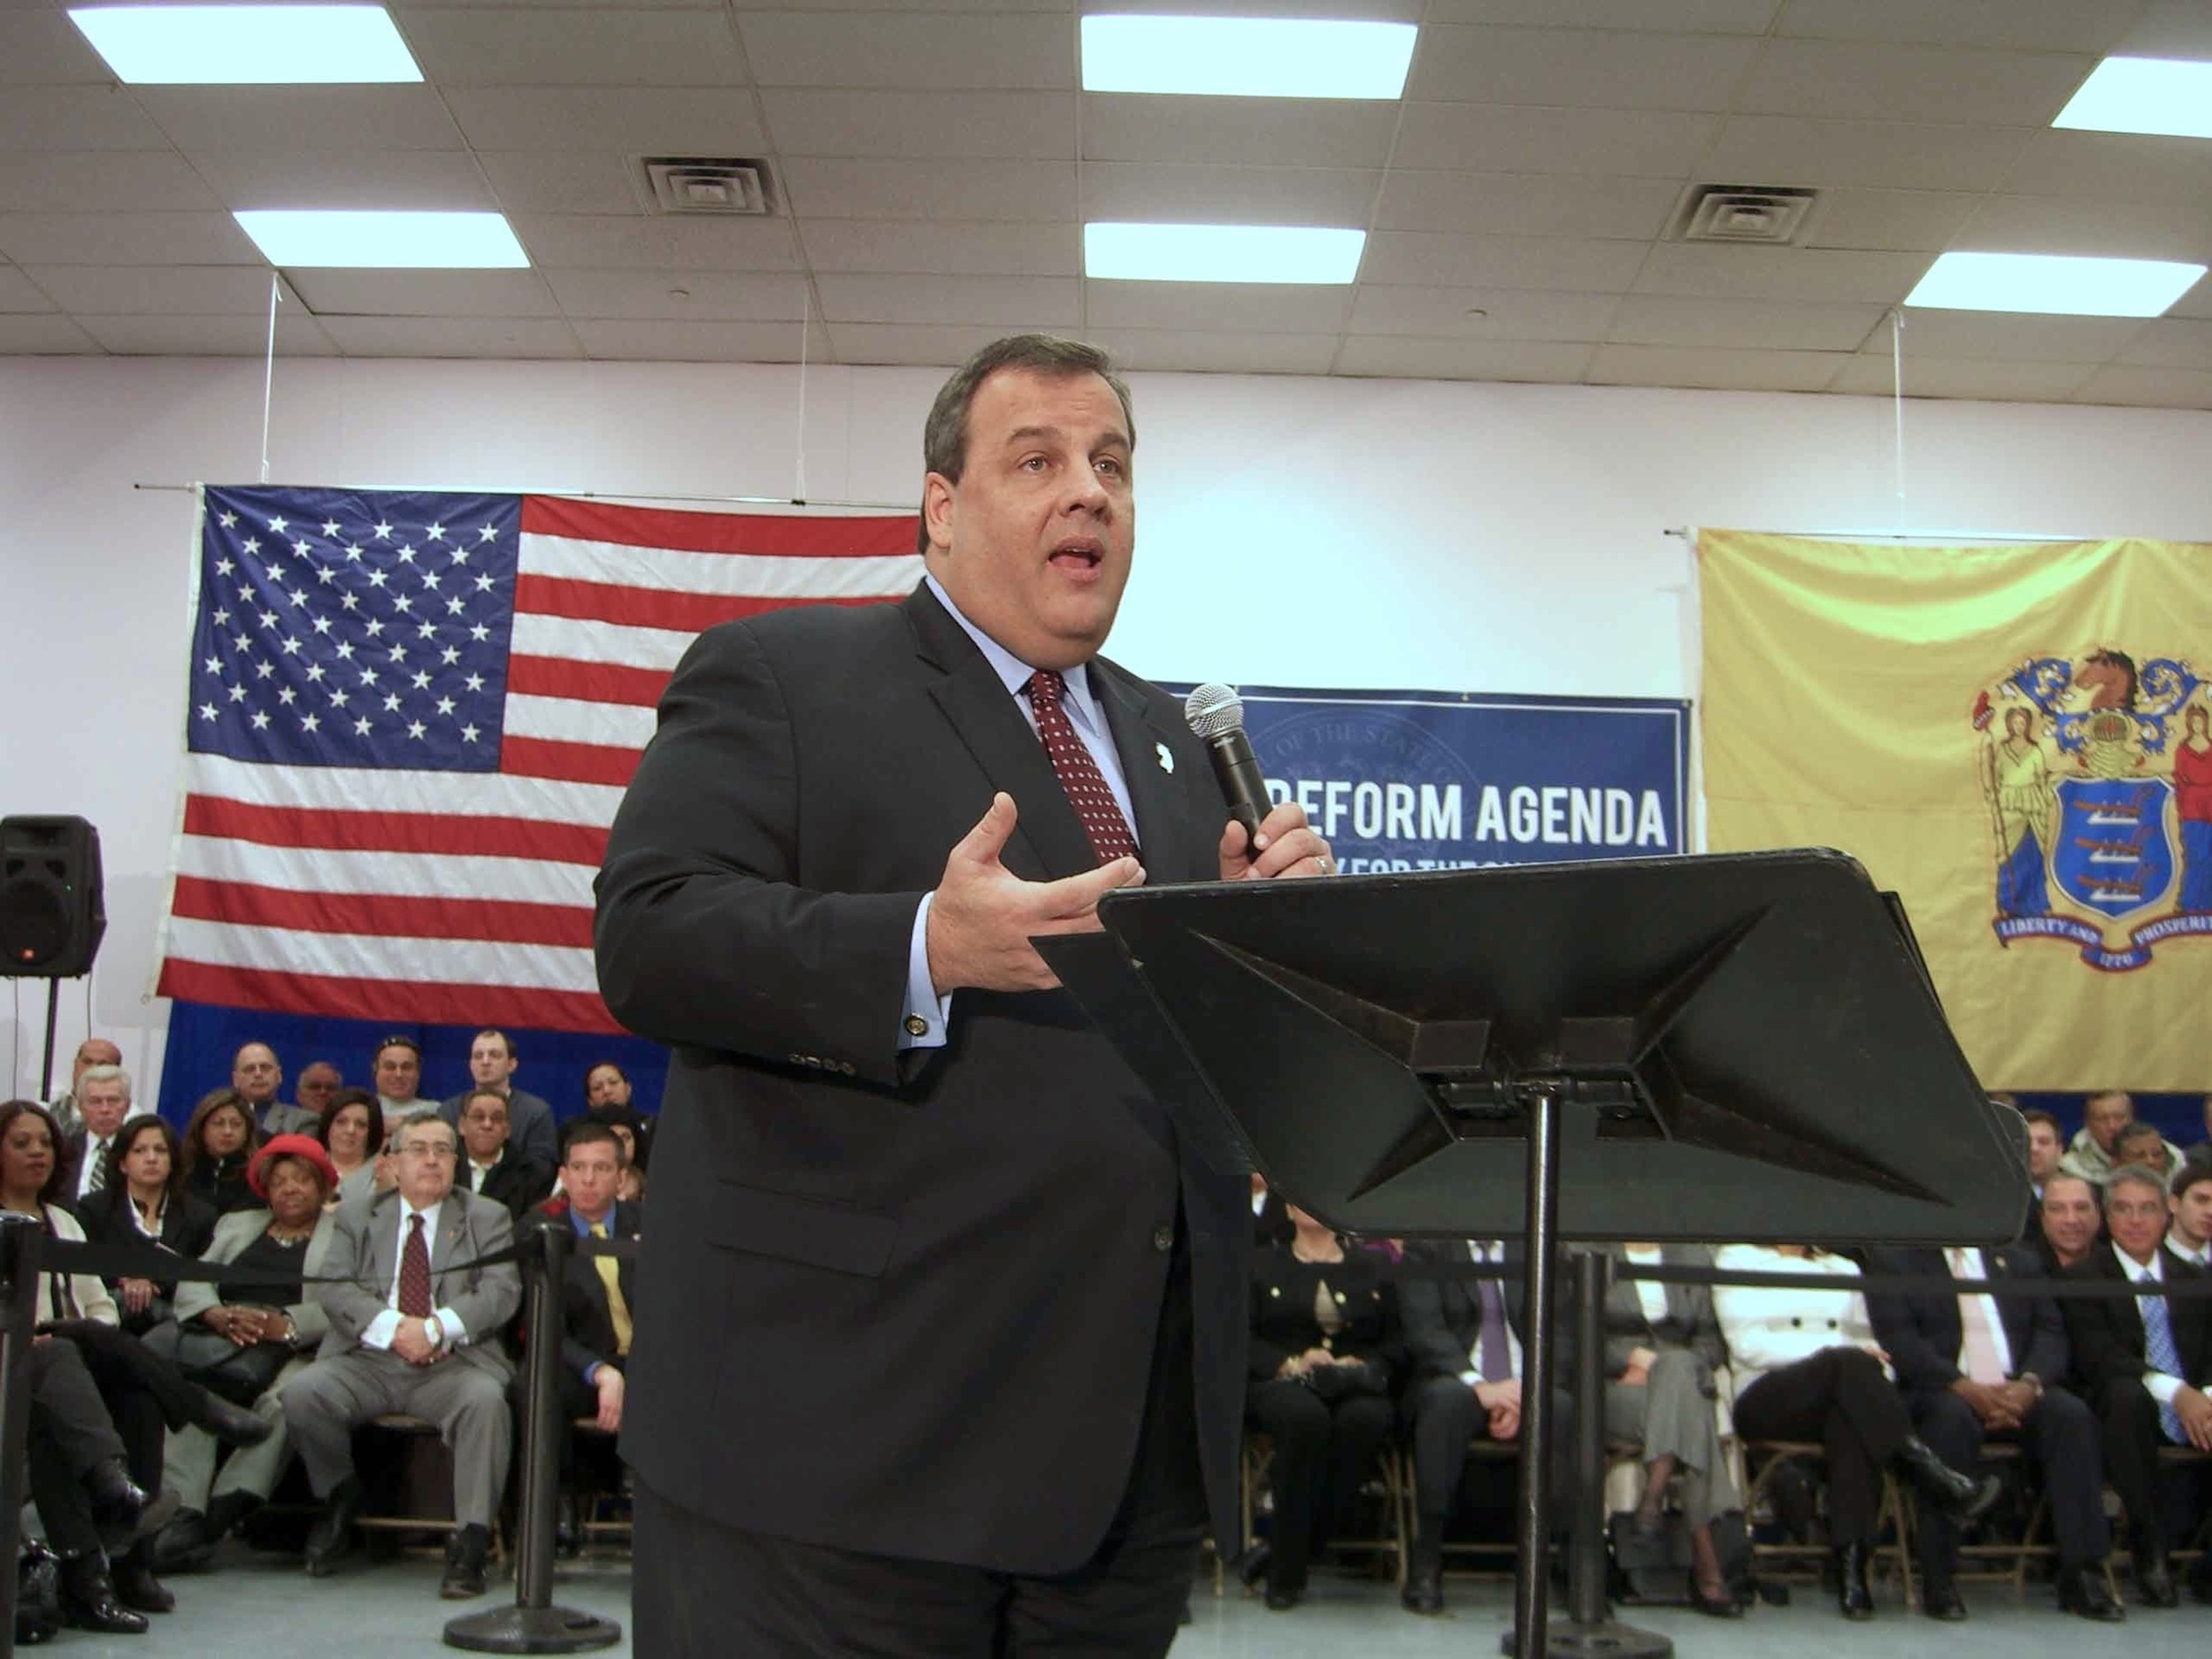 Click photo to download. Caption: New Jersey Governor Chris Christiespeaks at a town hall meeting in Union City, New Jersey,on February 9, 2011. Credit:Luigi Novi via Wikimedia Commons.